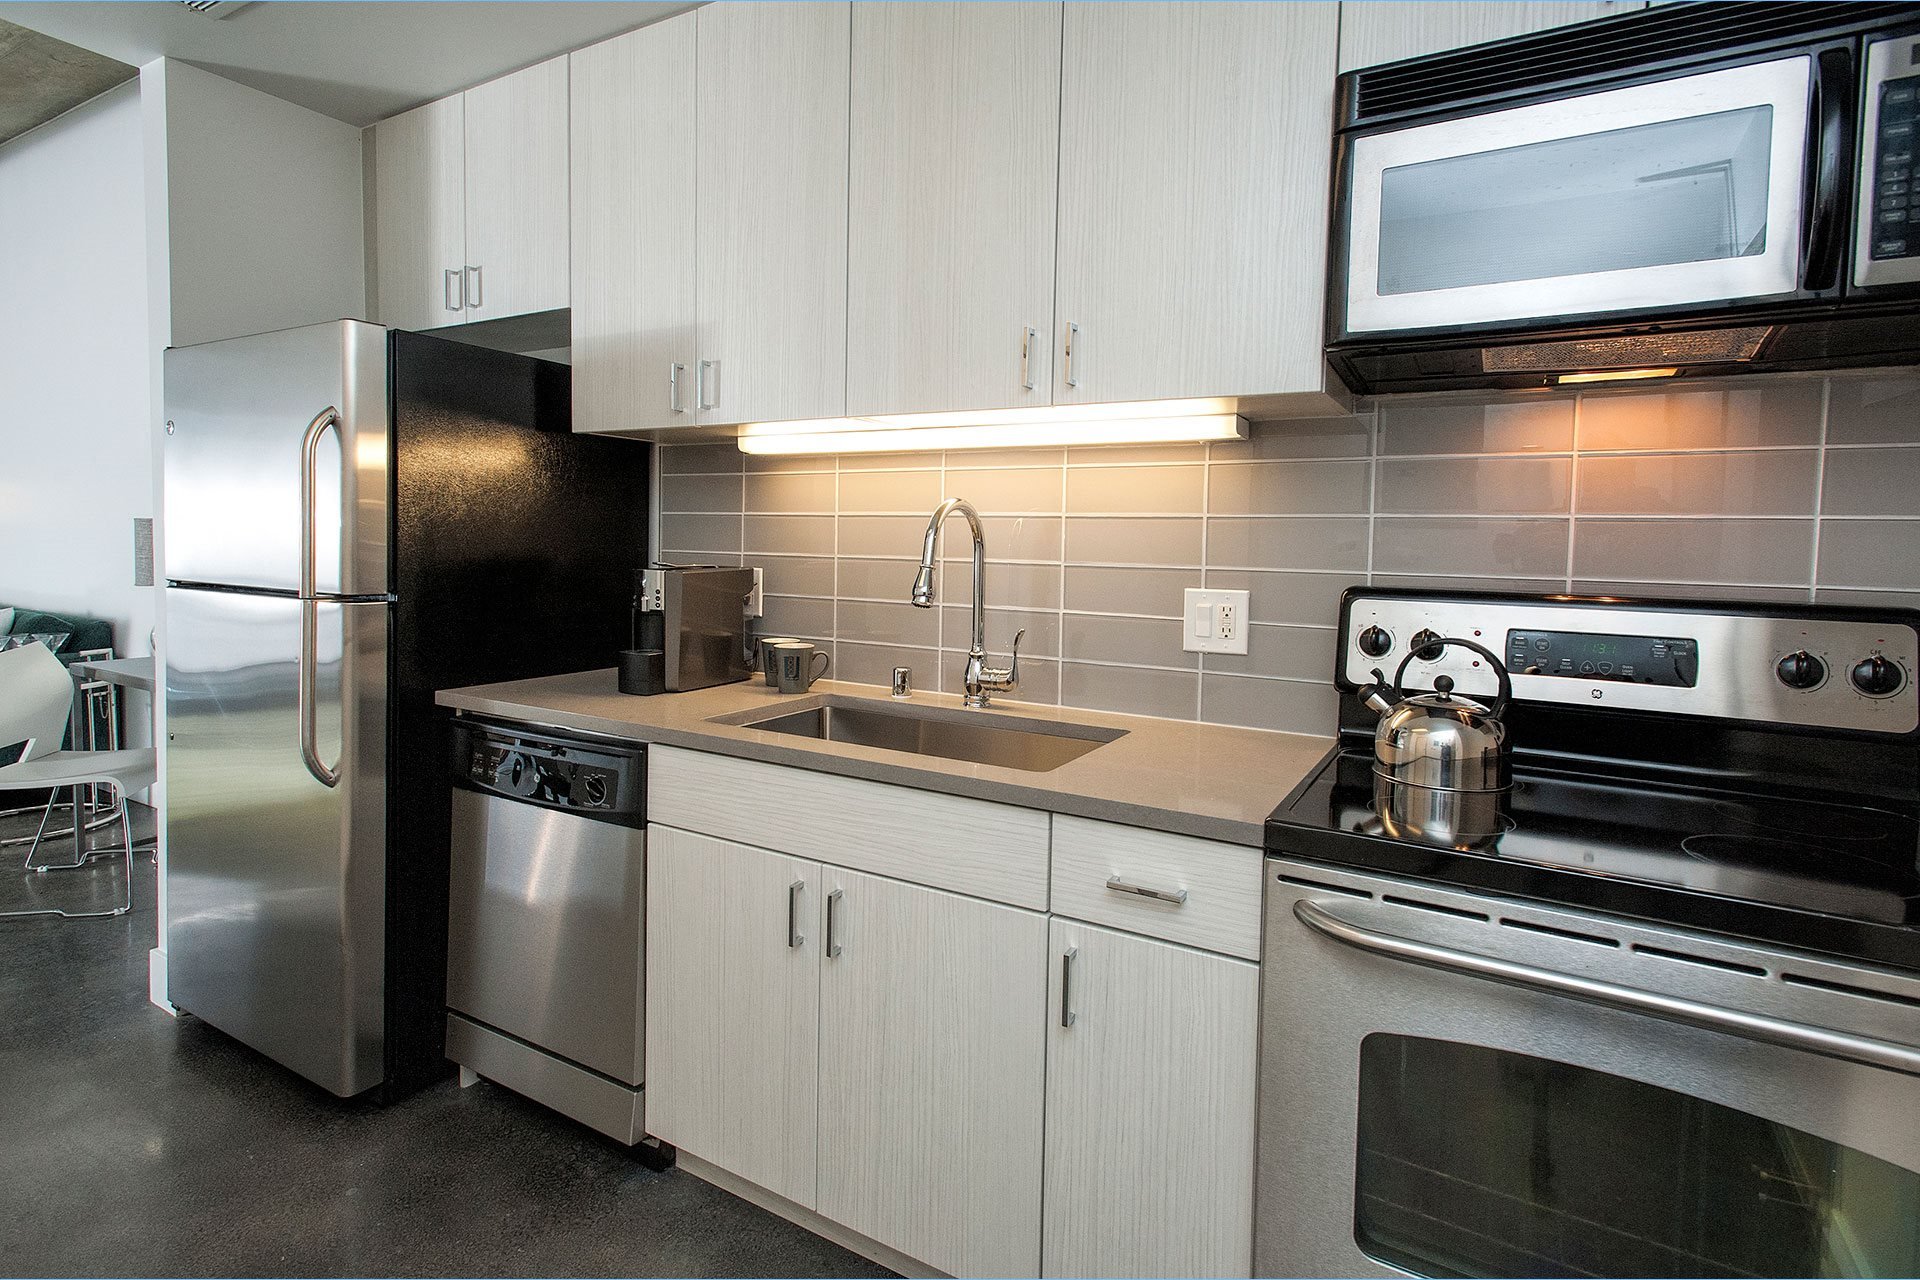 800J Lofts Modern Appliances and Finishes